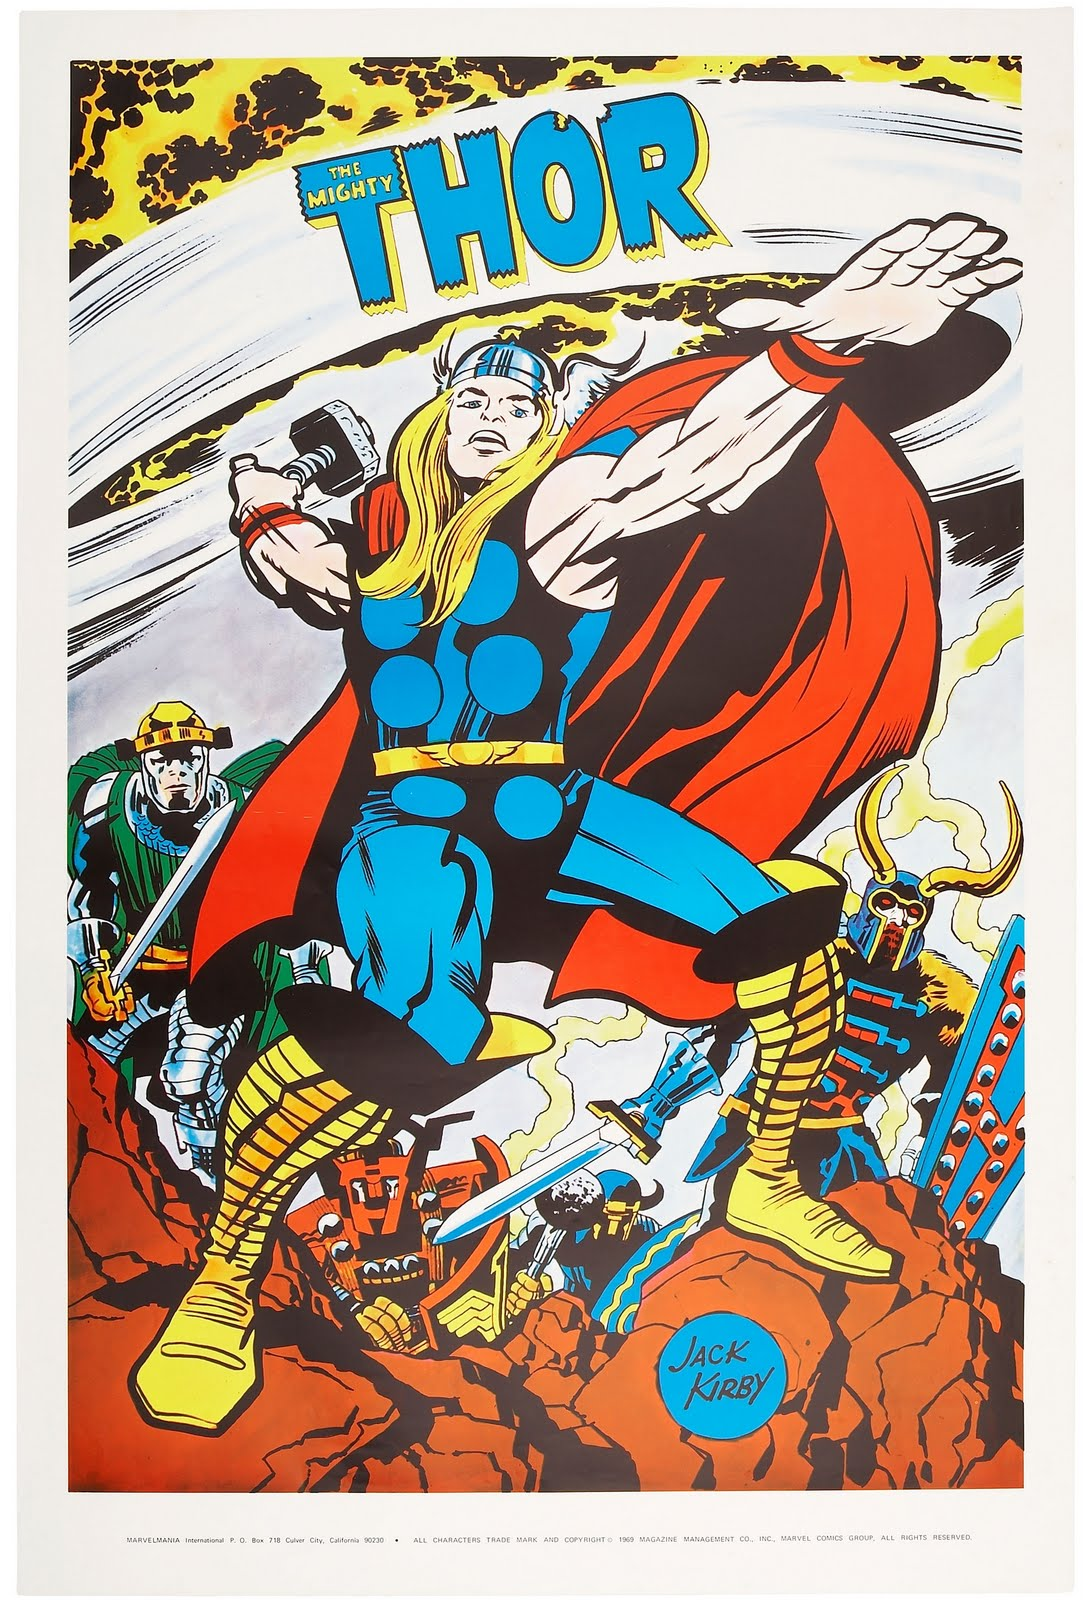 kirby jack thor marvel marvelmania comics posters poster mighty cap characters comic super dc univers bd personnages heros avengers revisited